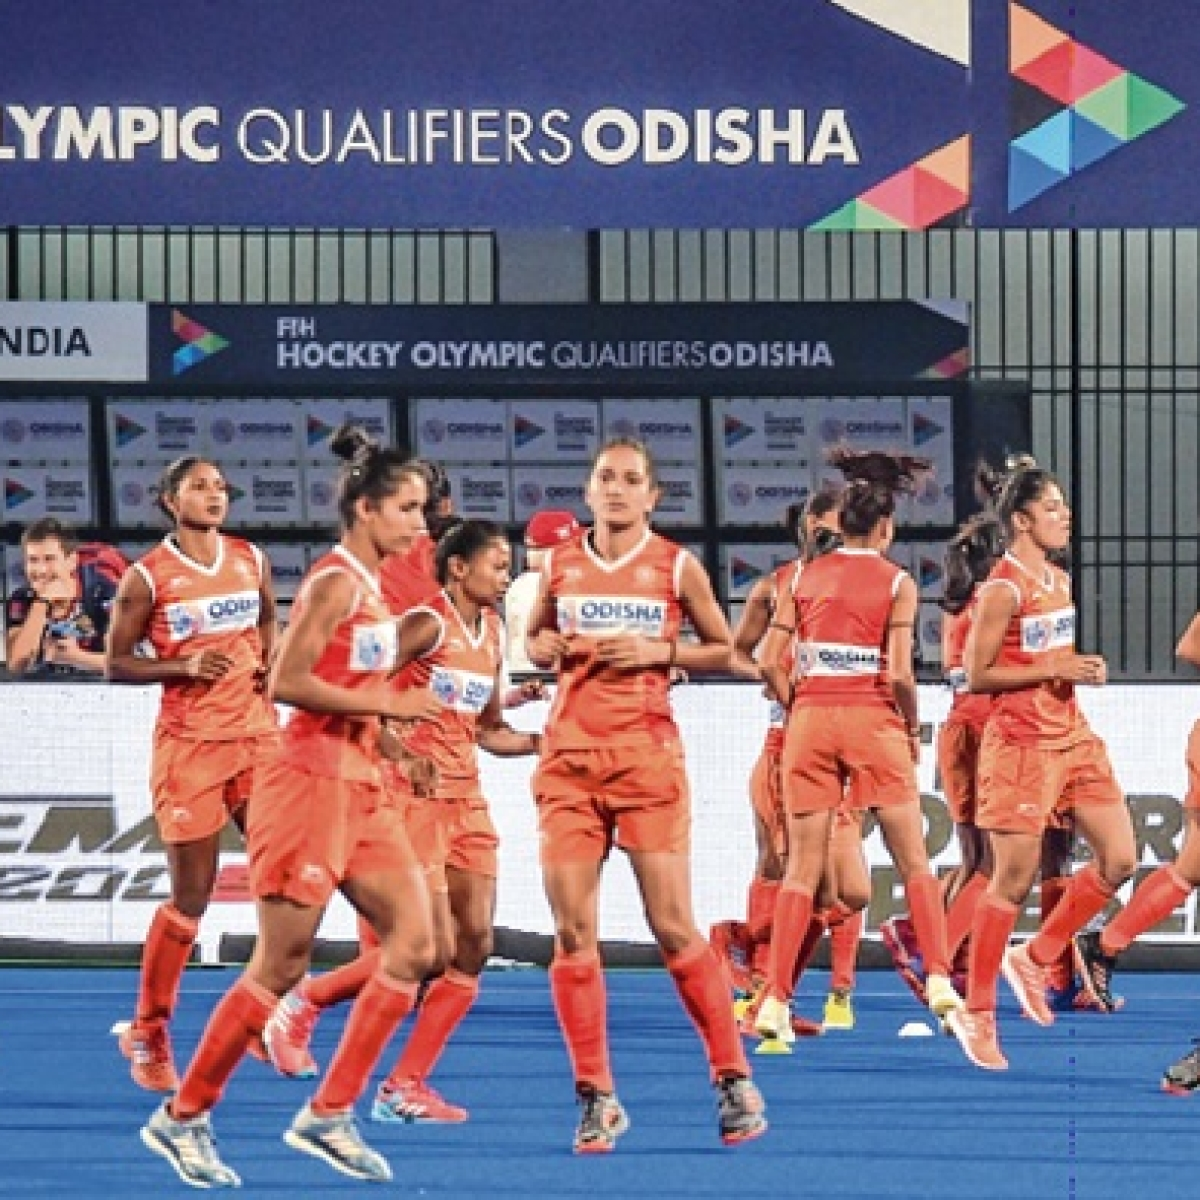 Easy for men; tough for women in Olympic qualifiers